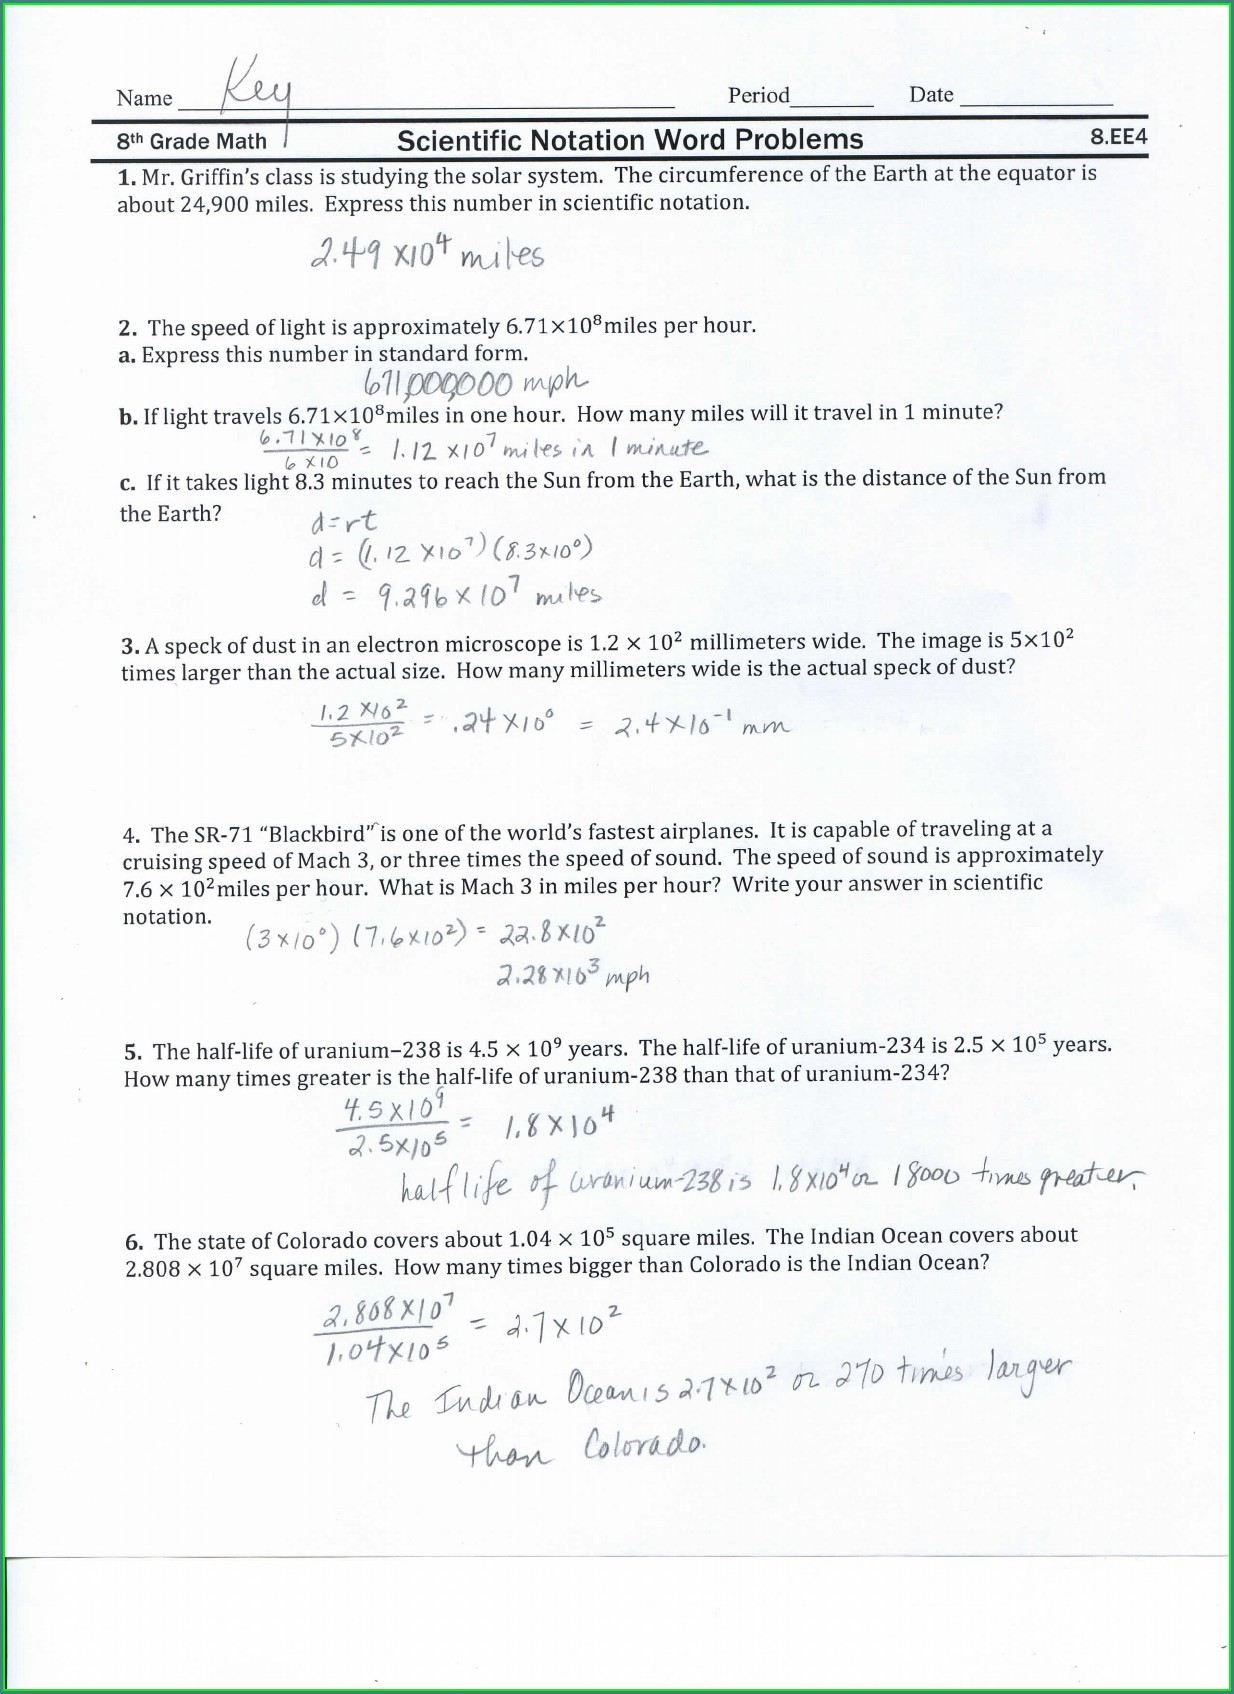 Function Notation Word Problems Worksheet Pdf